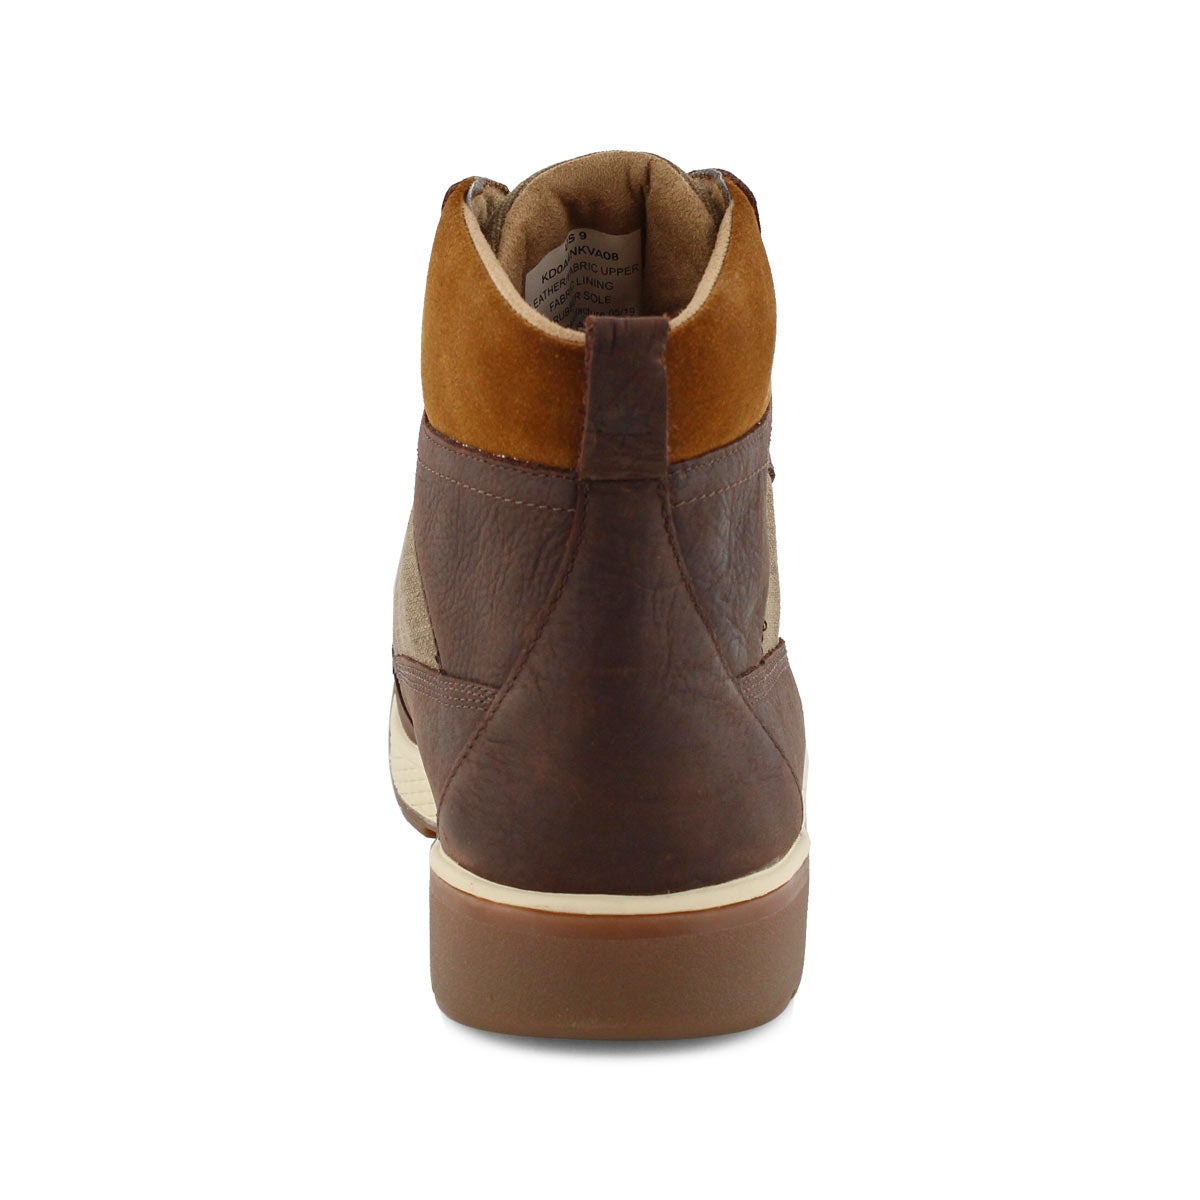 Men's FUNDY brown waterproof ankle boots